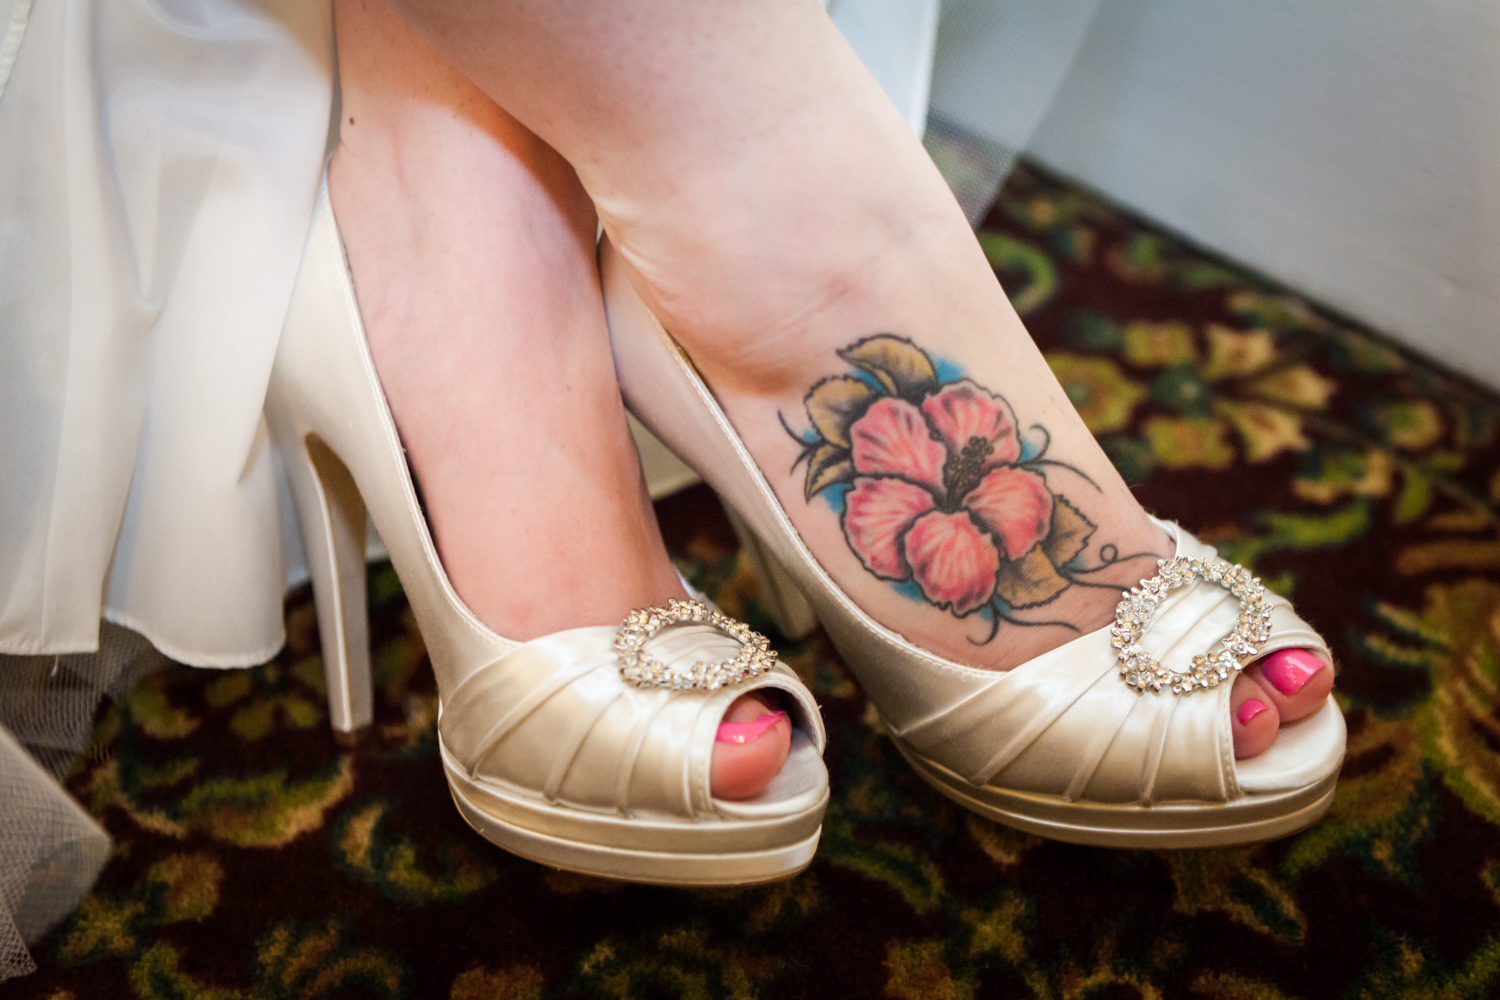 Close up on bride's feet with flower tattoo and satin high heels